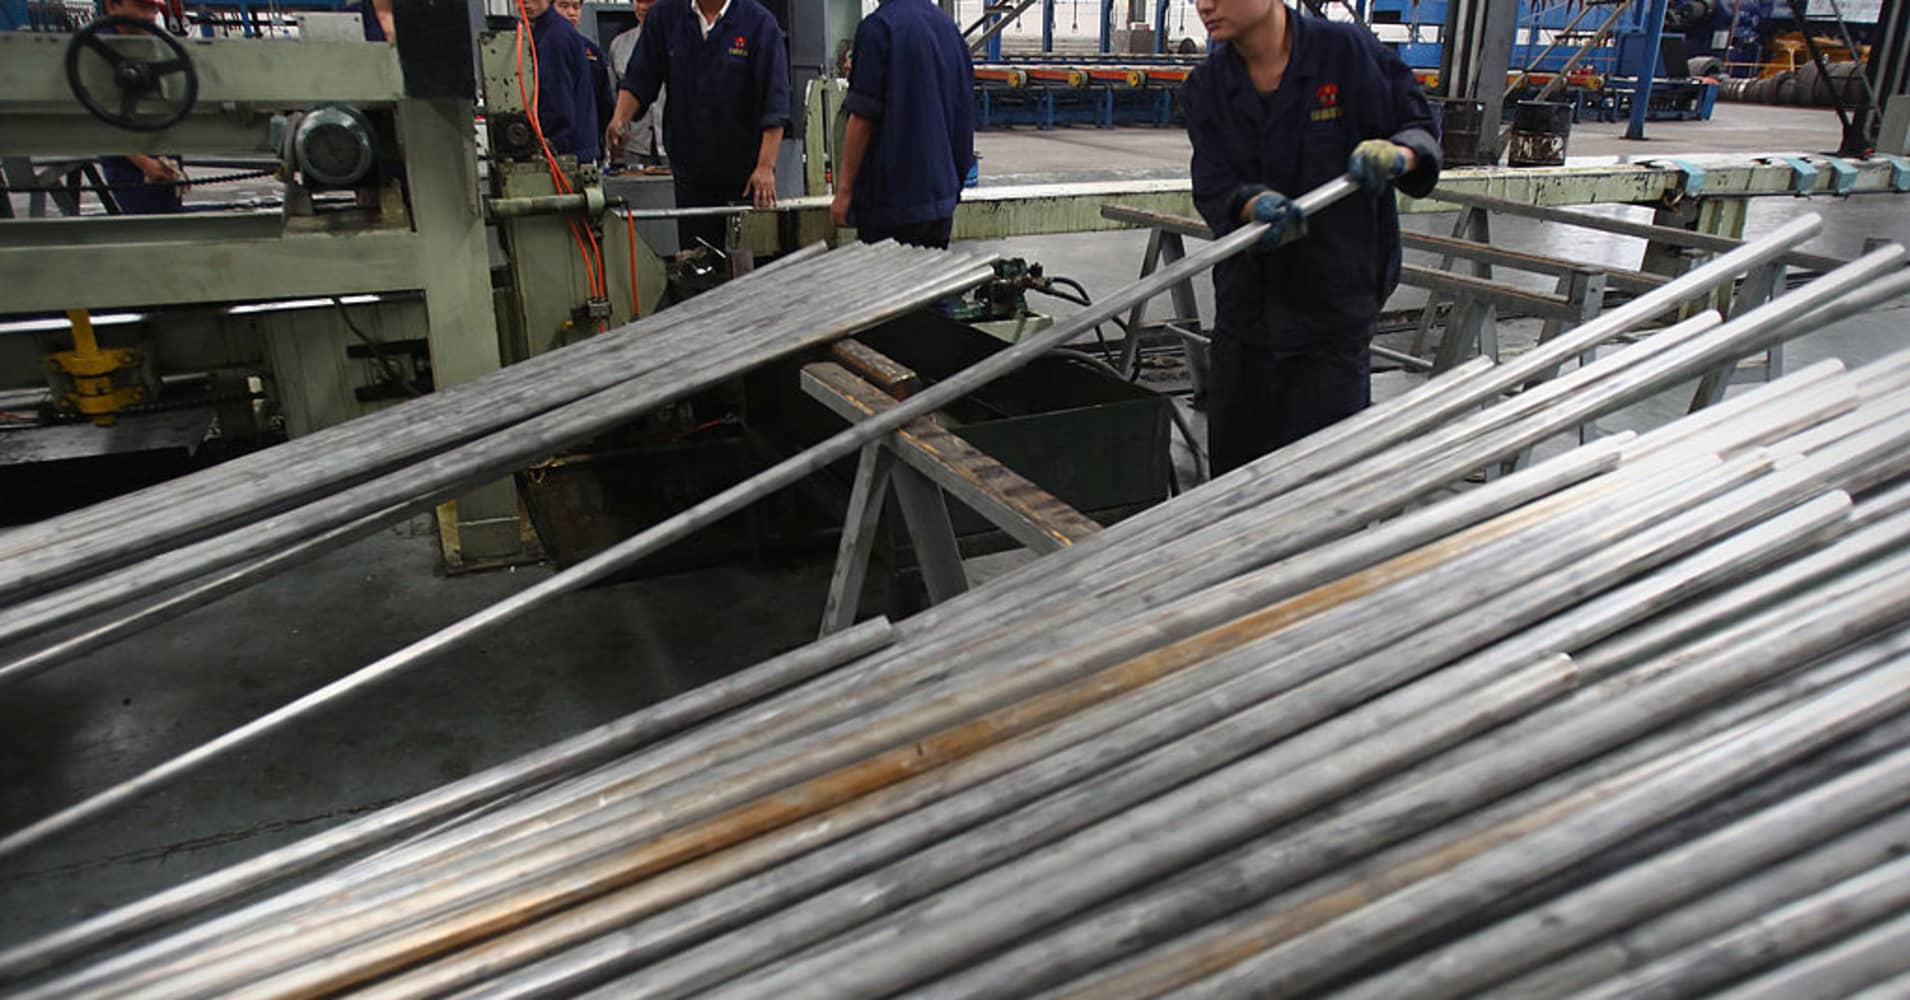 Aluminum set to rise on China supply-side reforms: Goldman Sachs